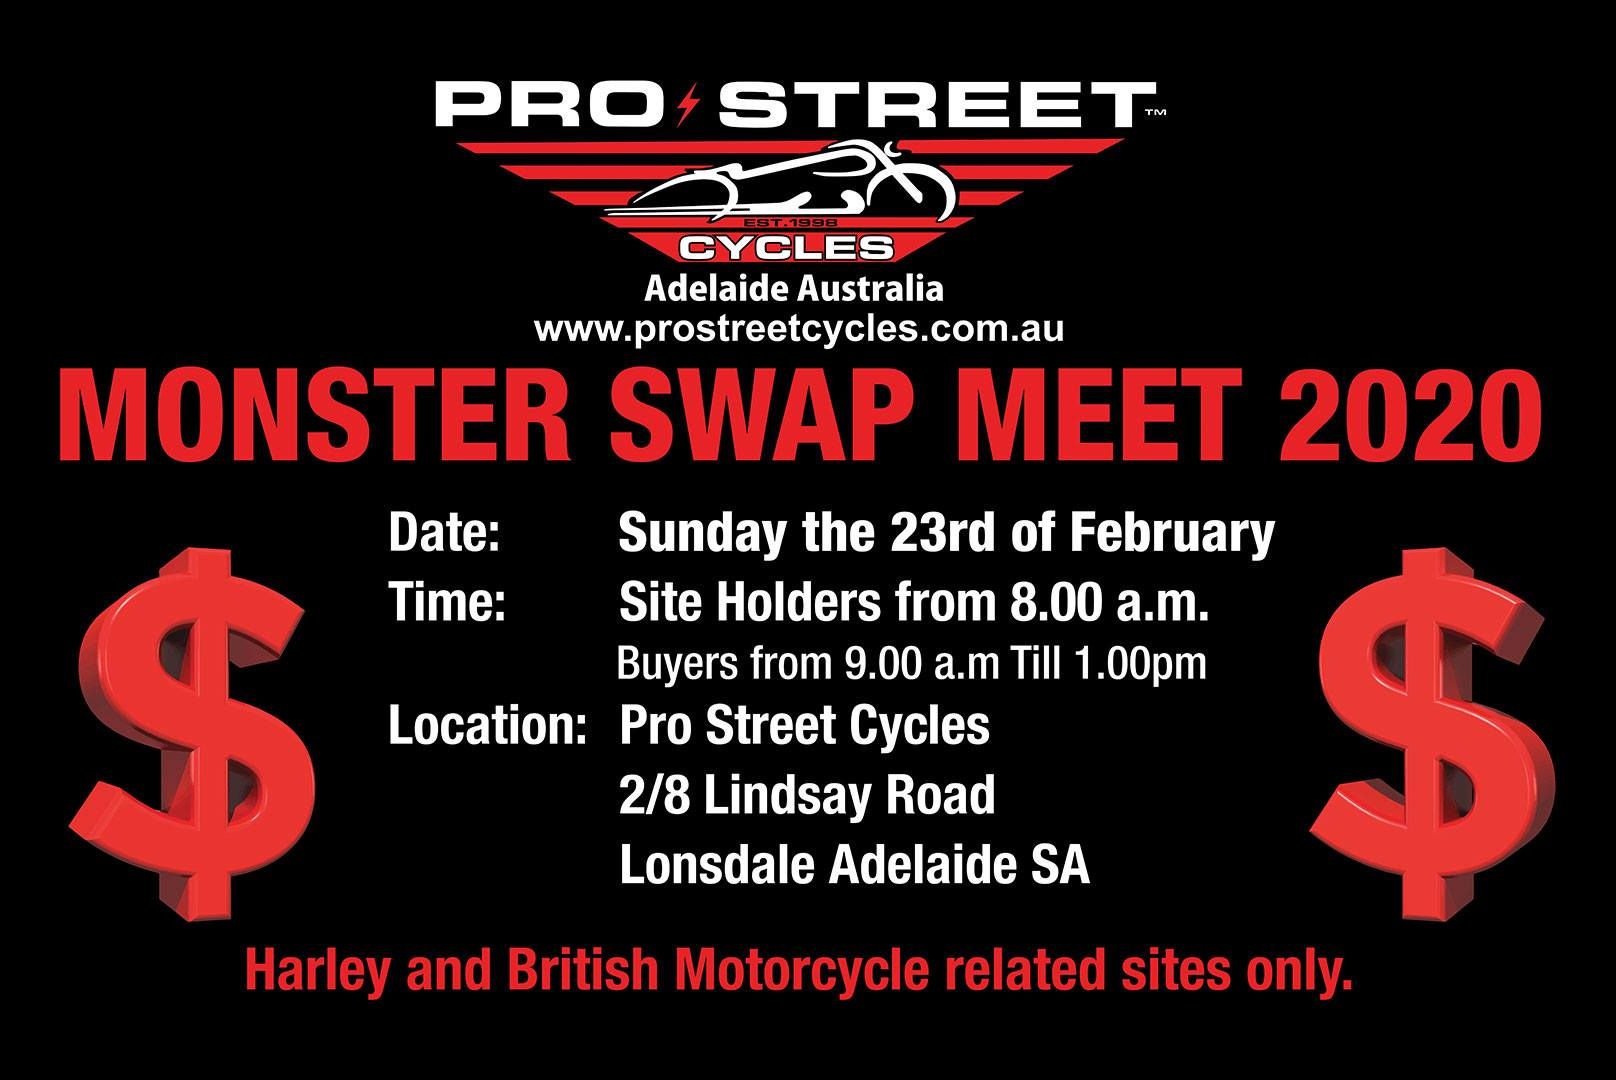 Pro Street Motorcycle Swap meet 2020 @ Pro Street Cycles 2/8 Lindsay Road, Lonsdale | Lonsdale | South Australia | Australia